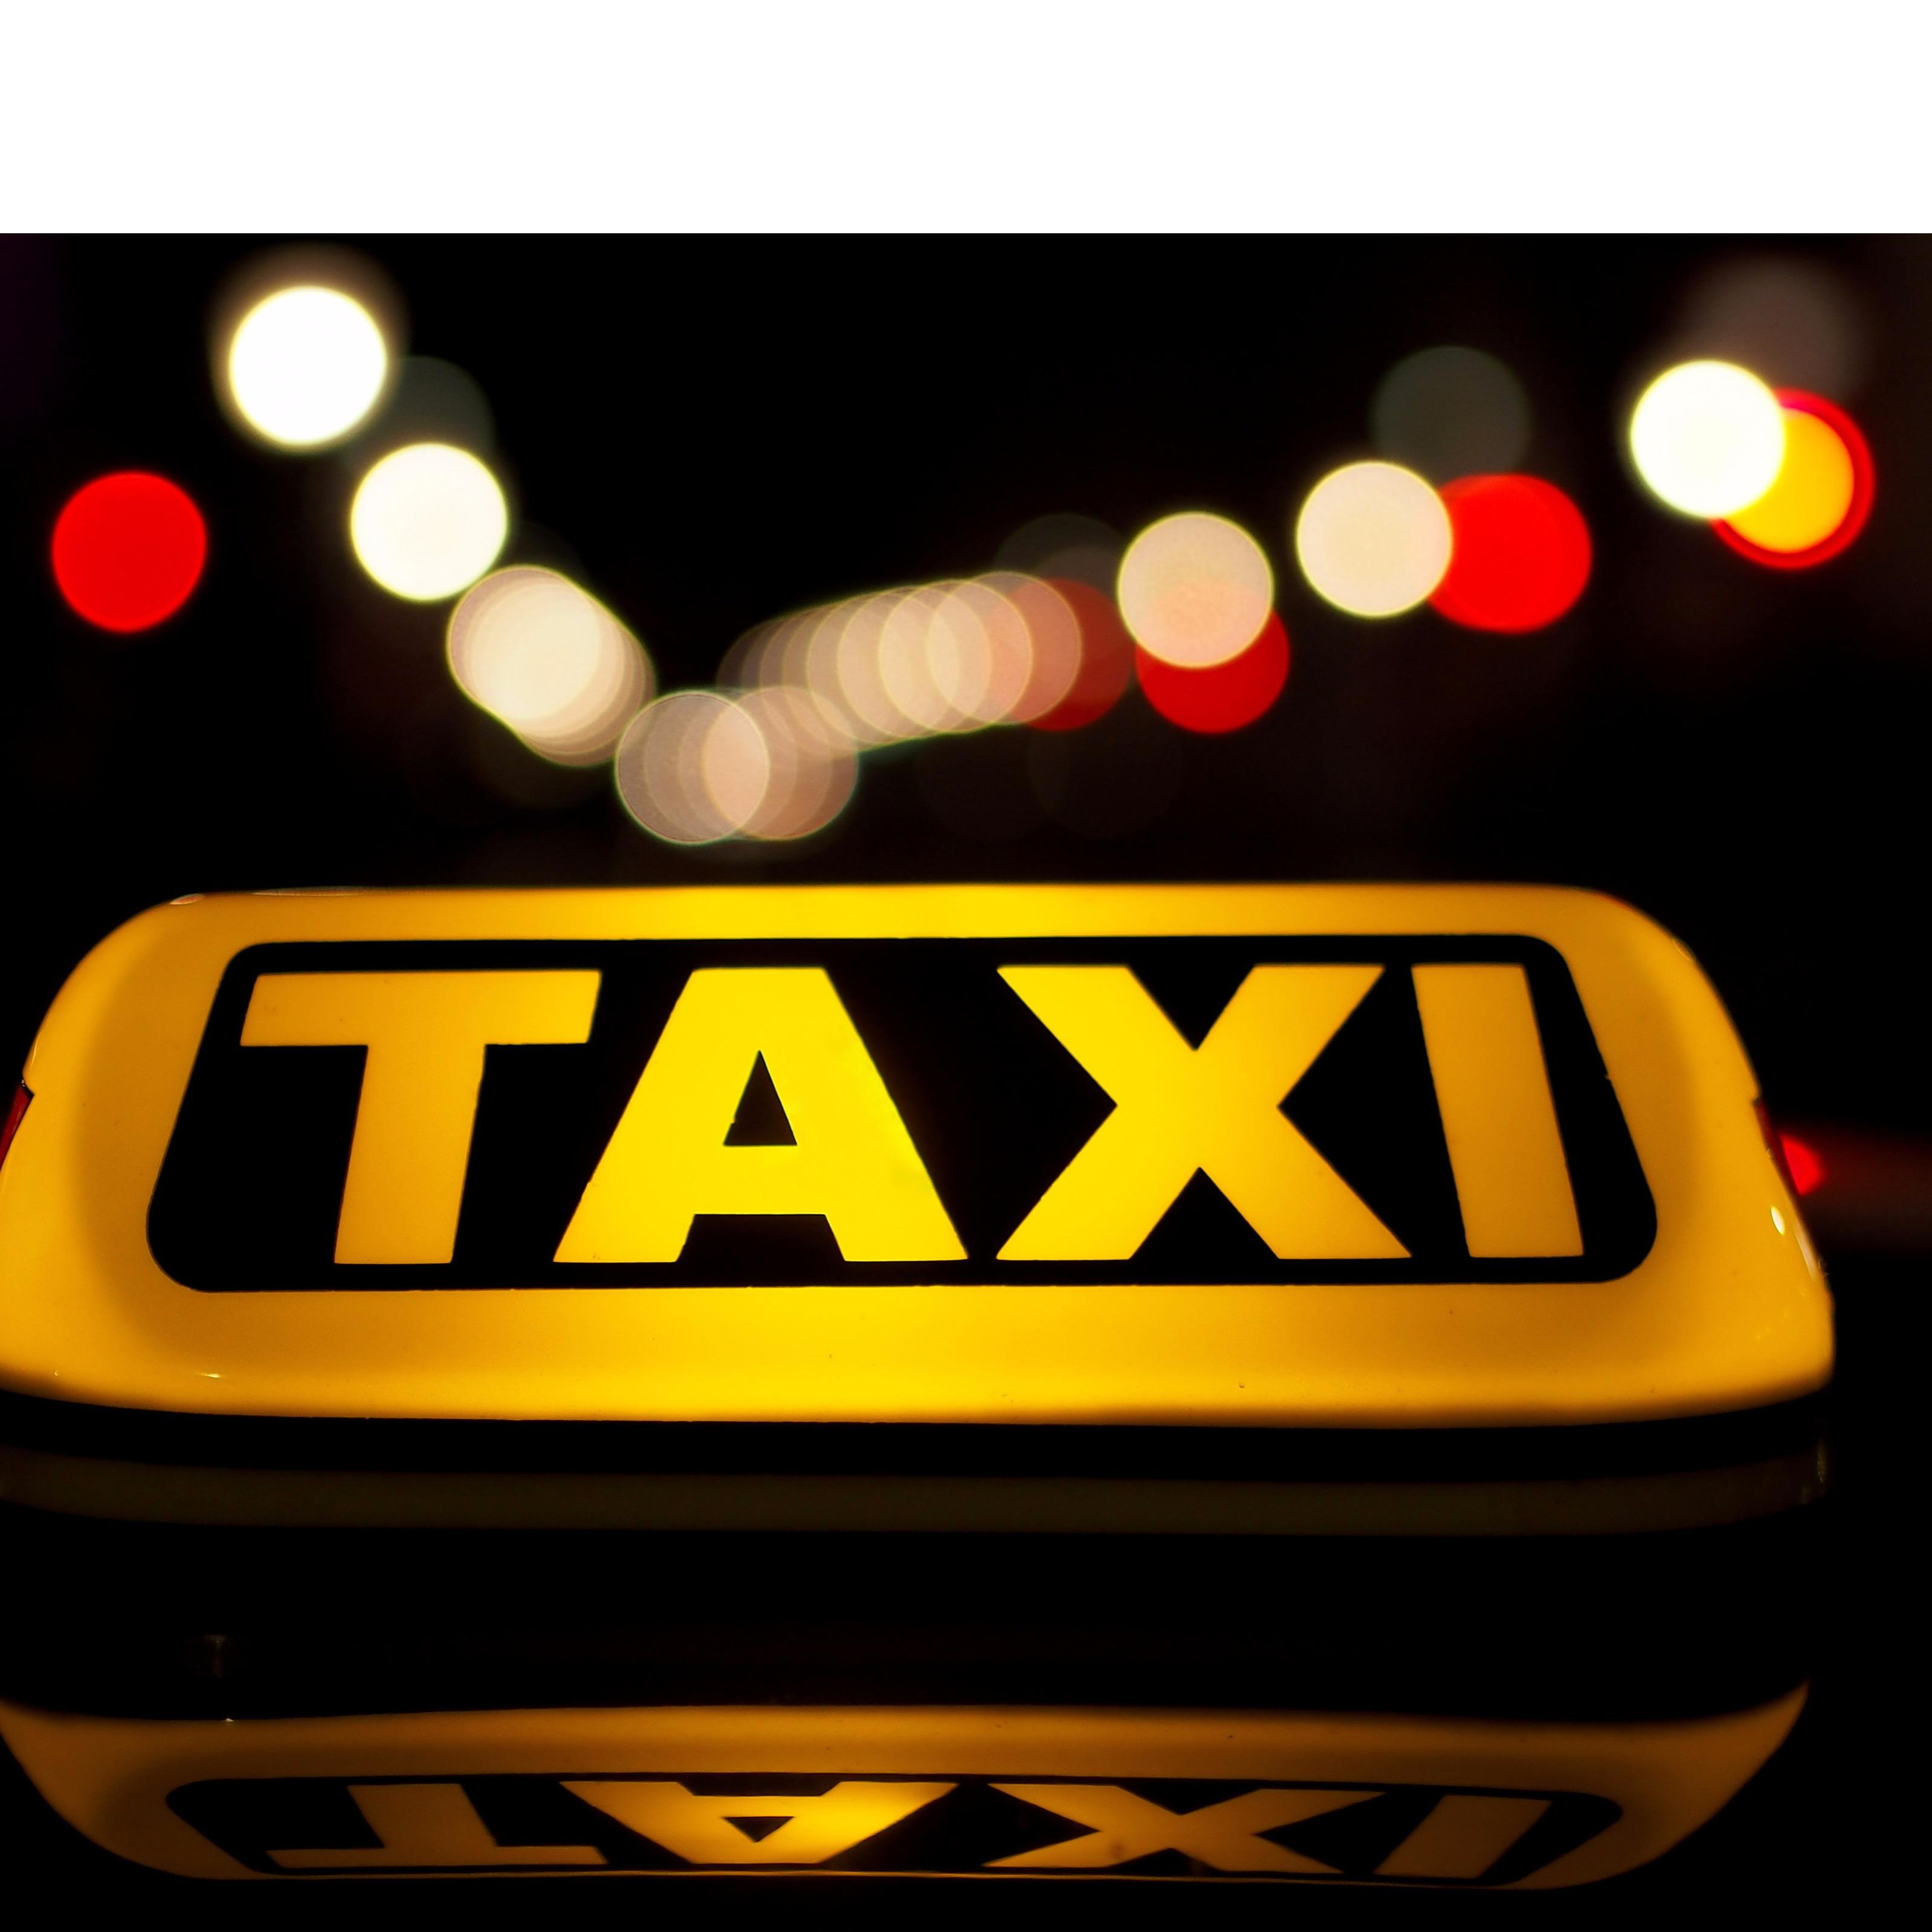 Five star taxi cab taxi service binghamton ny 13901 for A pet salon vestal ny